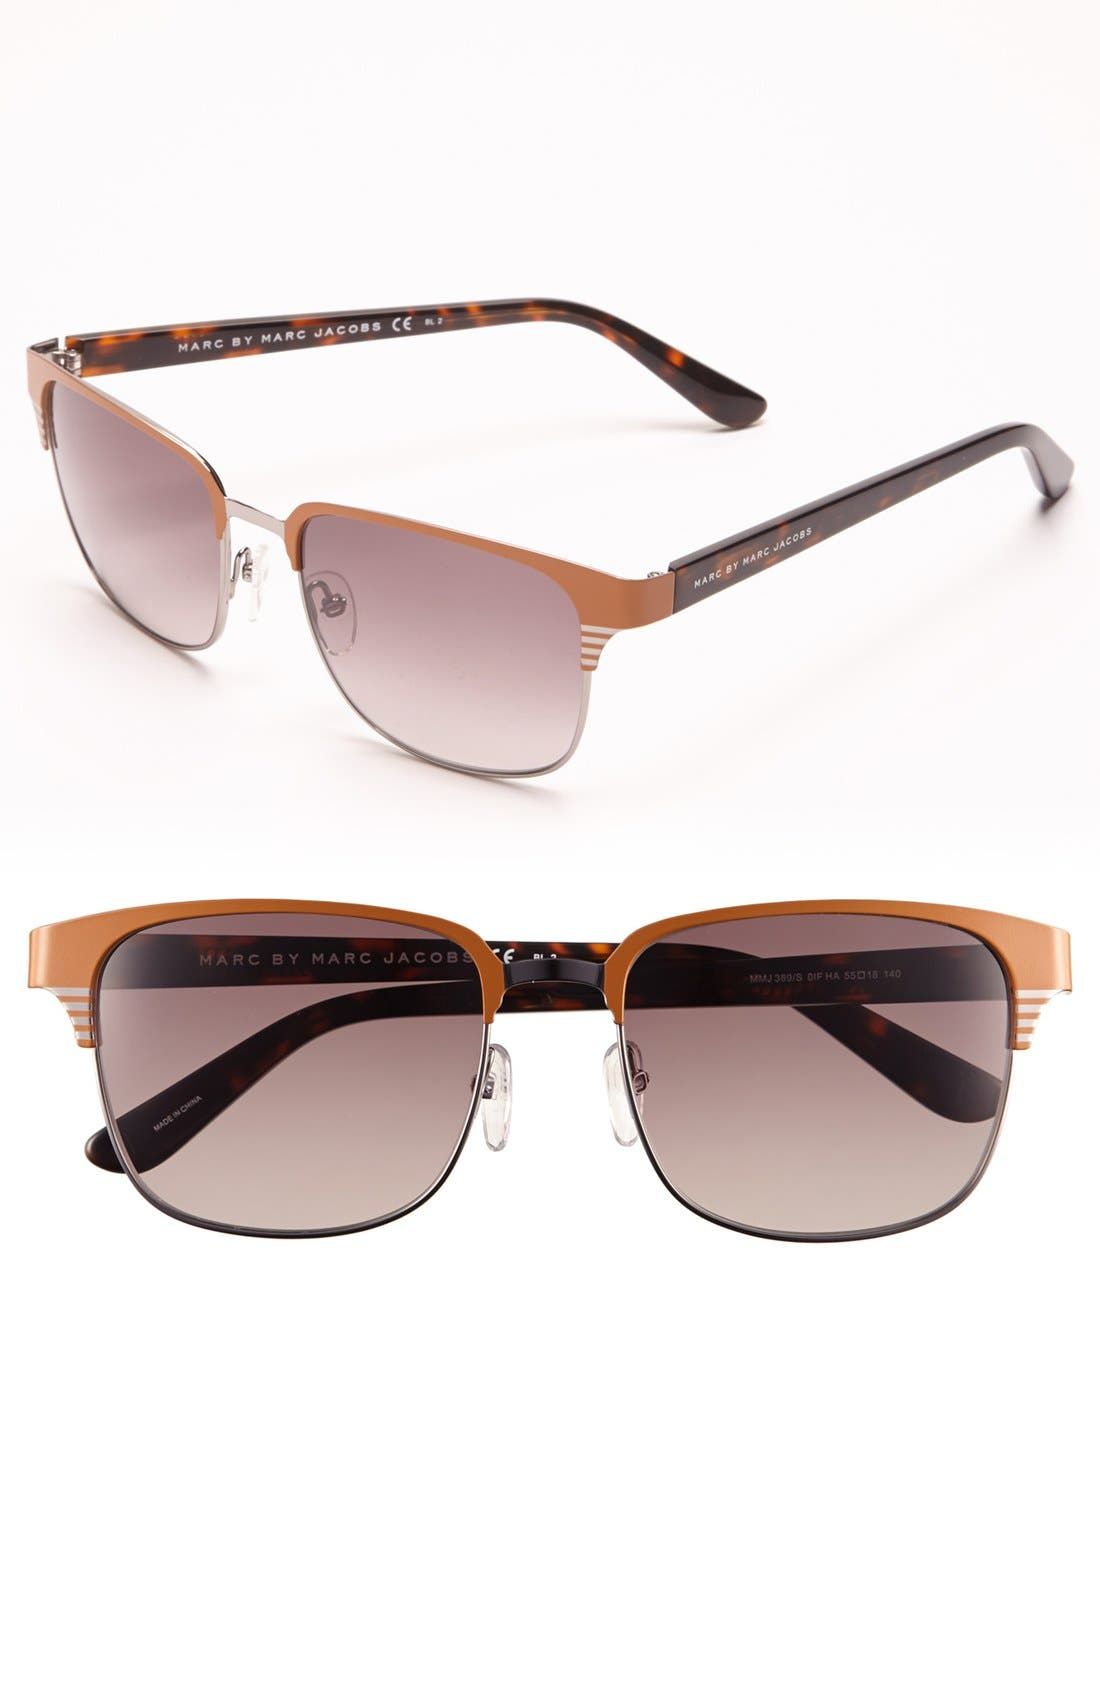 Main Image - MARC BY MARC JACOBS 55mm Stainless Steel Sunglasses